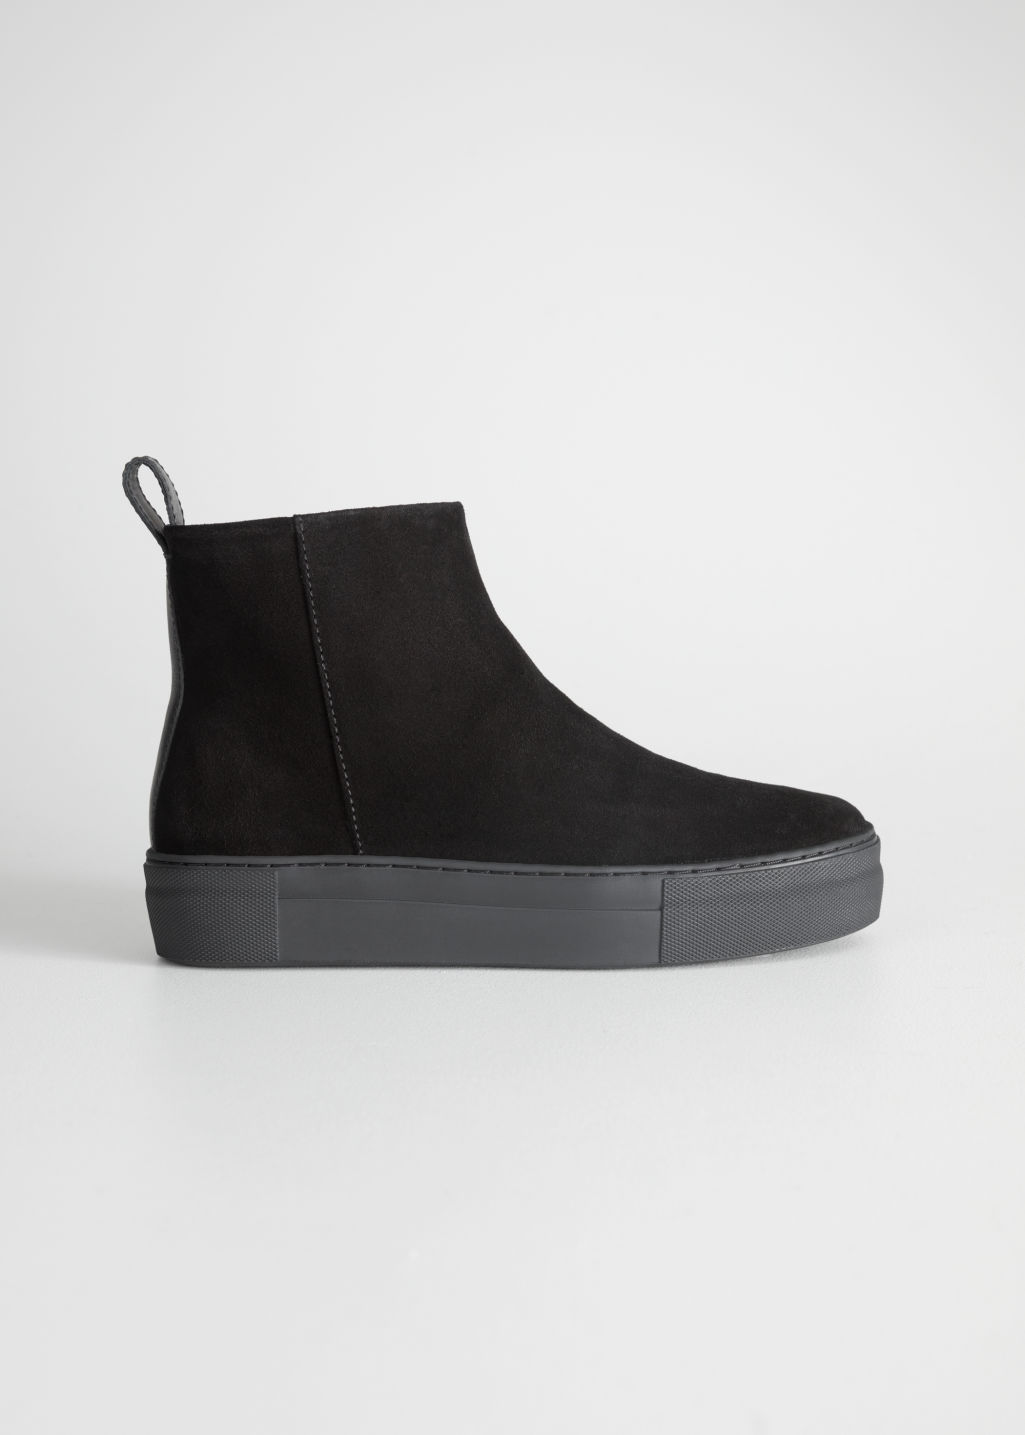 StillLife Front Image of Stories Suede Snow Boots in Black